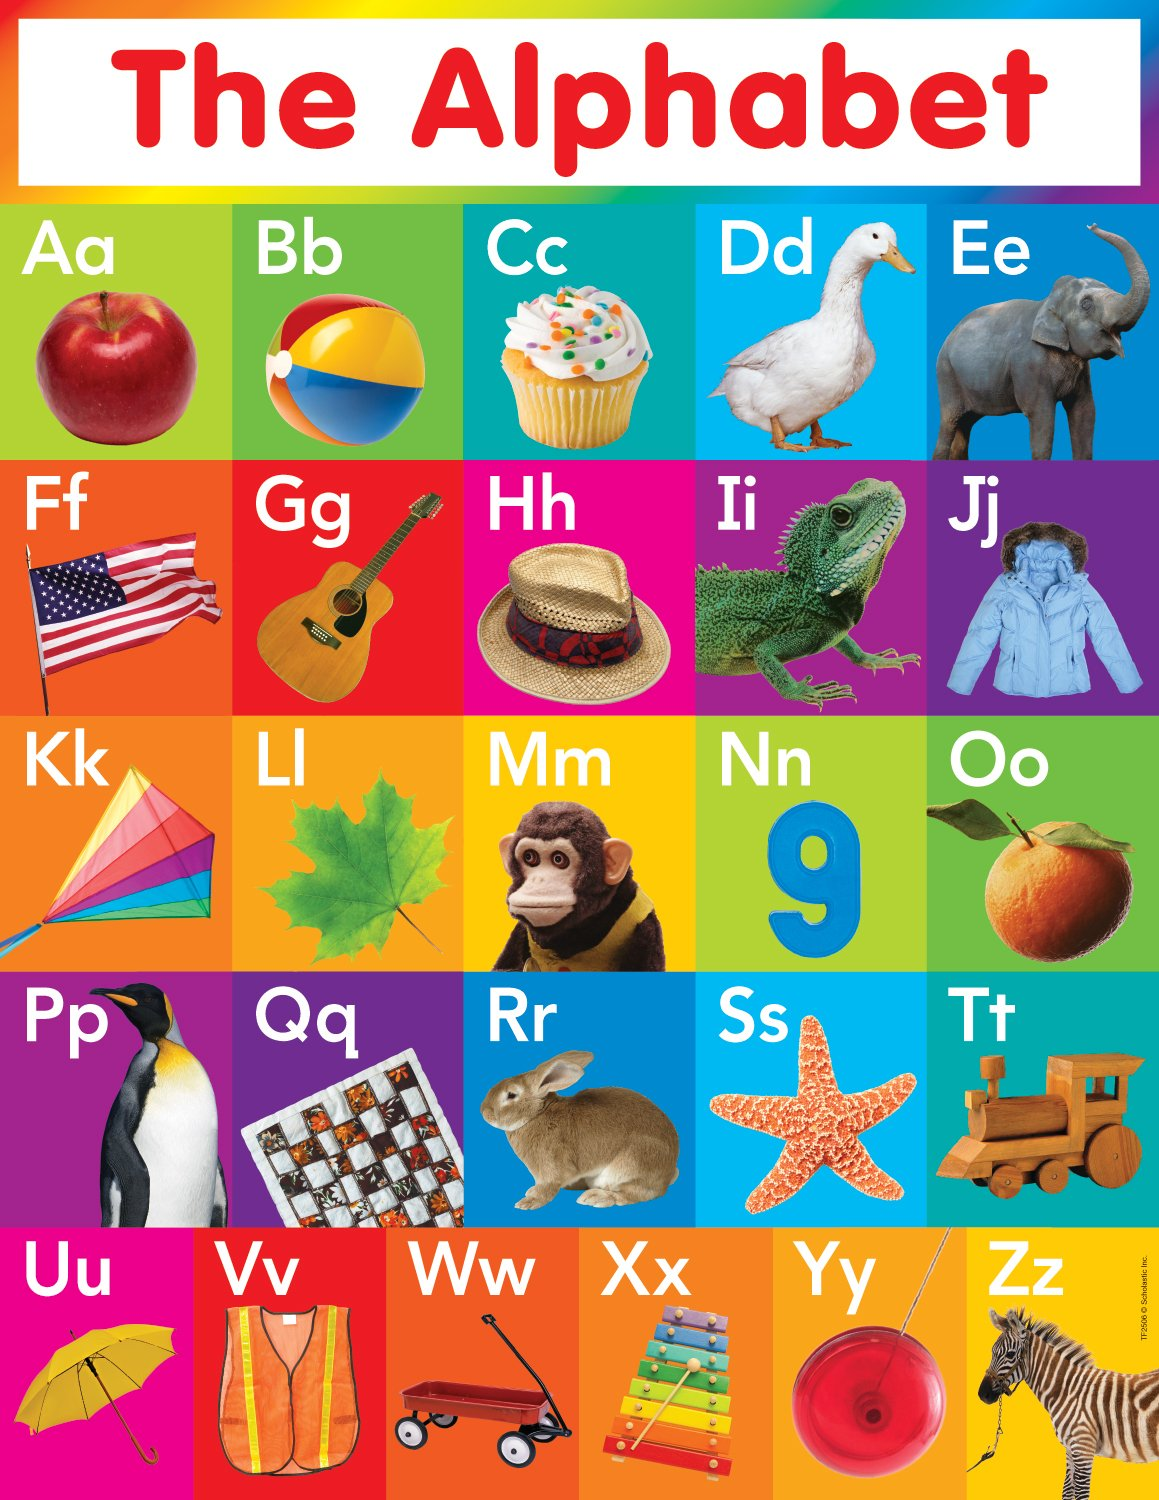 Worksheet Alphabet Charts For Kindergarten amazon com scholastic teachers friend alphabet chart multiple colors tf2506 themed classroom displays and decorati